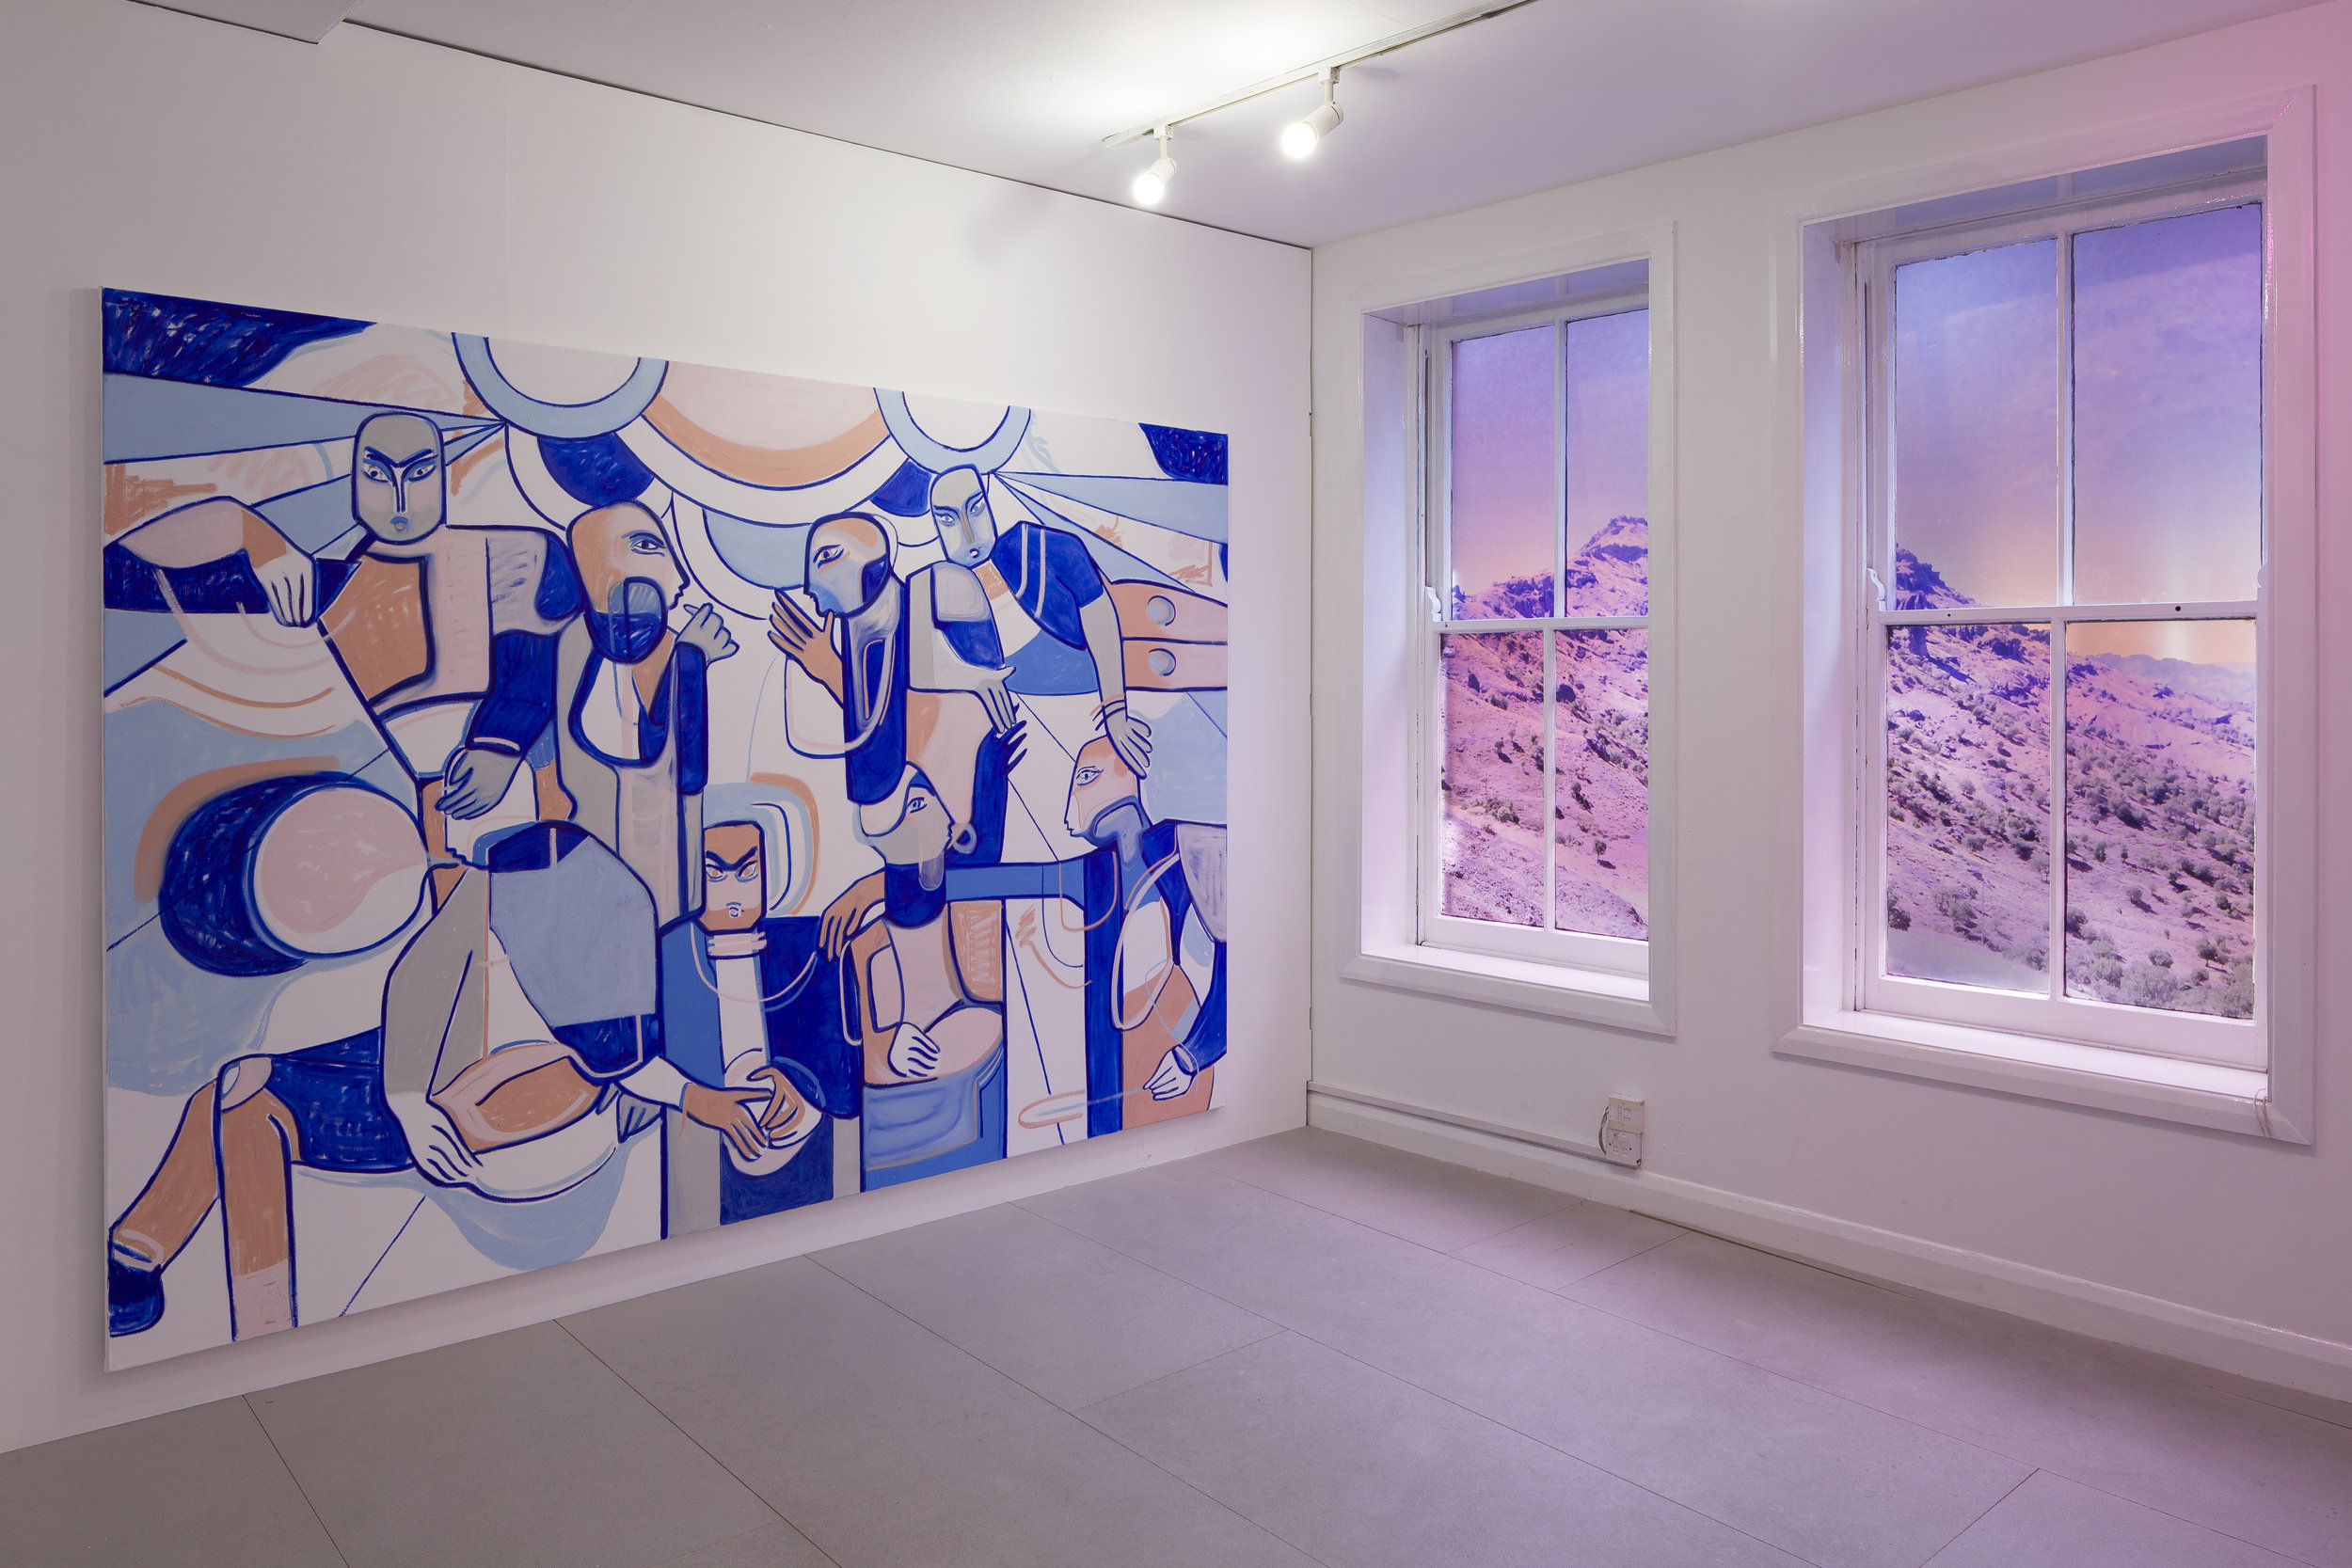 Melike Kara, My beloved wild valley, installation view at Arcadia Missa, 2019 @Ollie Hammick